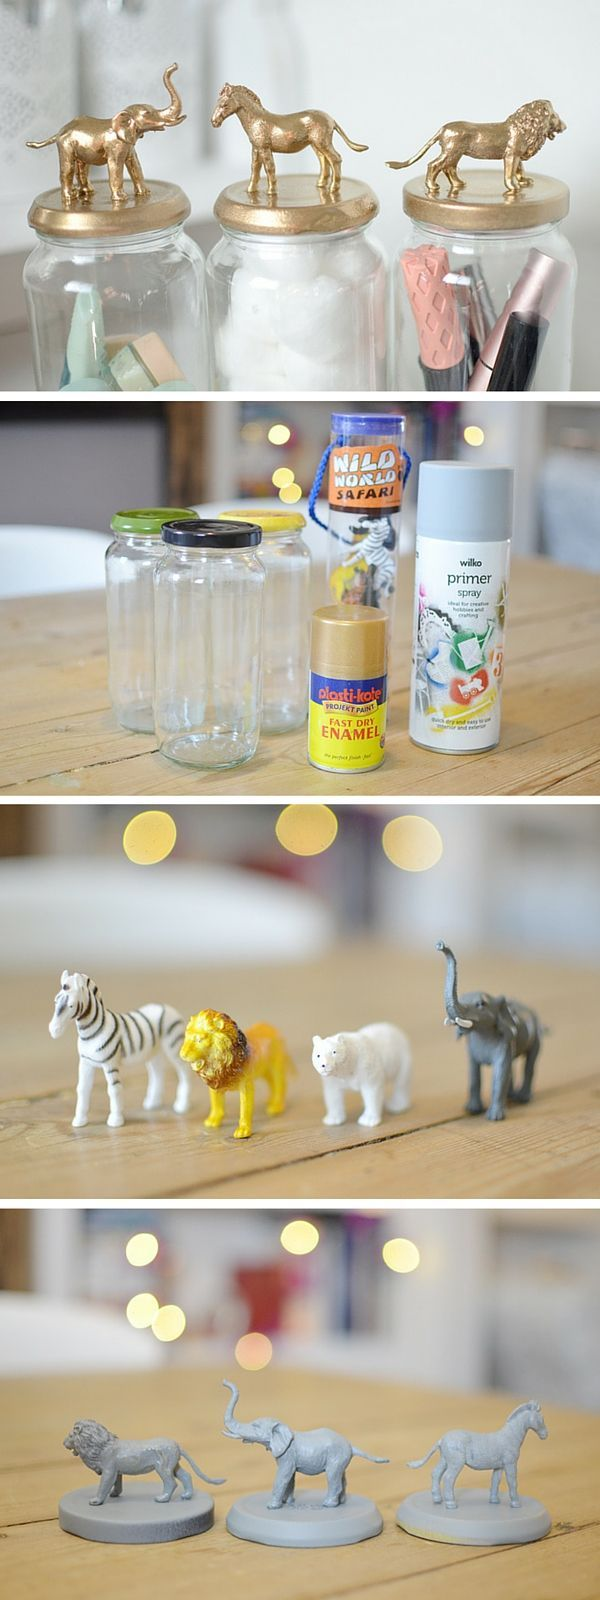 cool 15 Cool DIYs to Turn Your Home Decor from Plain to Awesome by http://www.best100-homedecorpictures.us/diy-home-decor/15-cool-diys-to-turn-your-home-decor-from-plain-to-awesome/